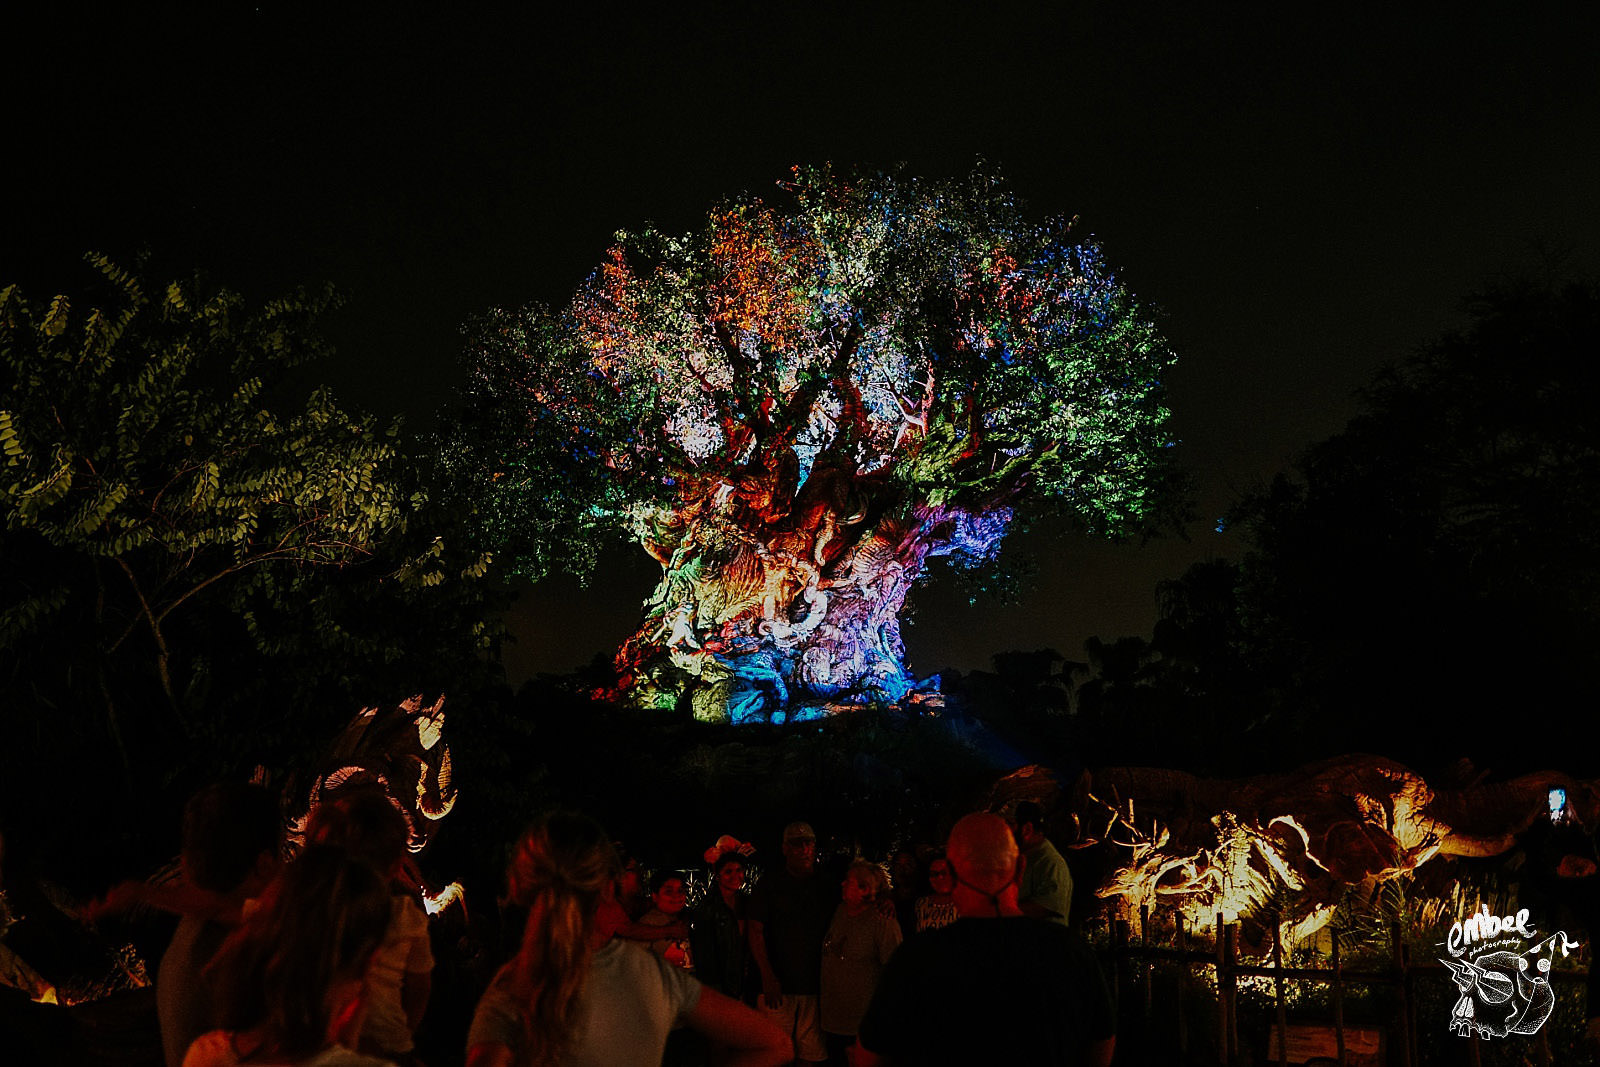 tree of life lit up at night in animal kingdom